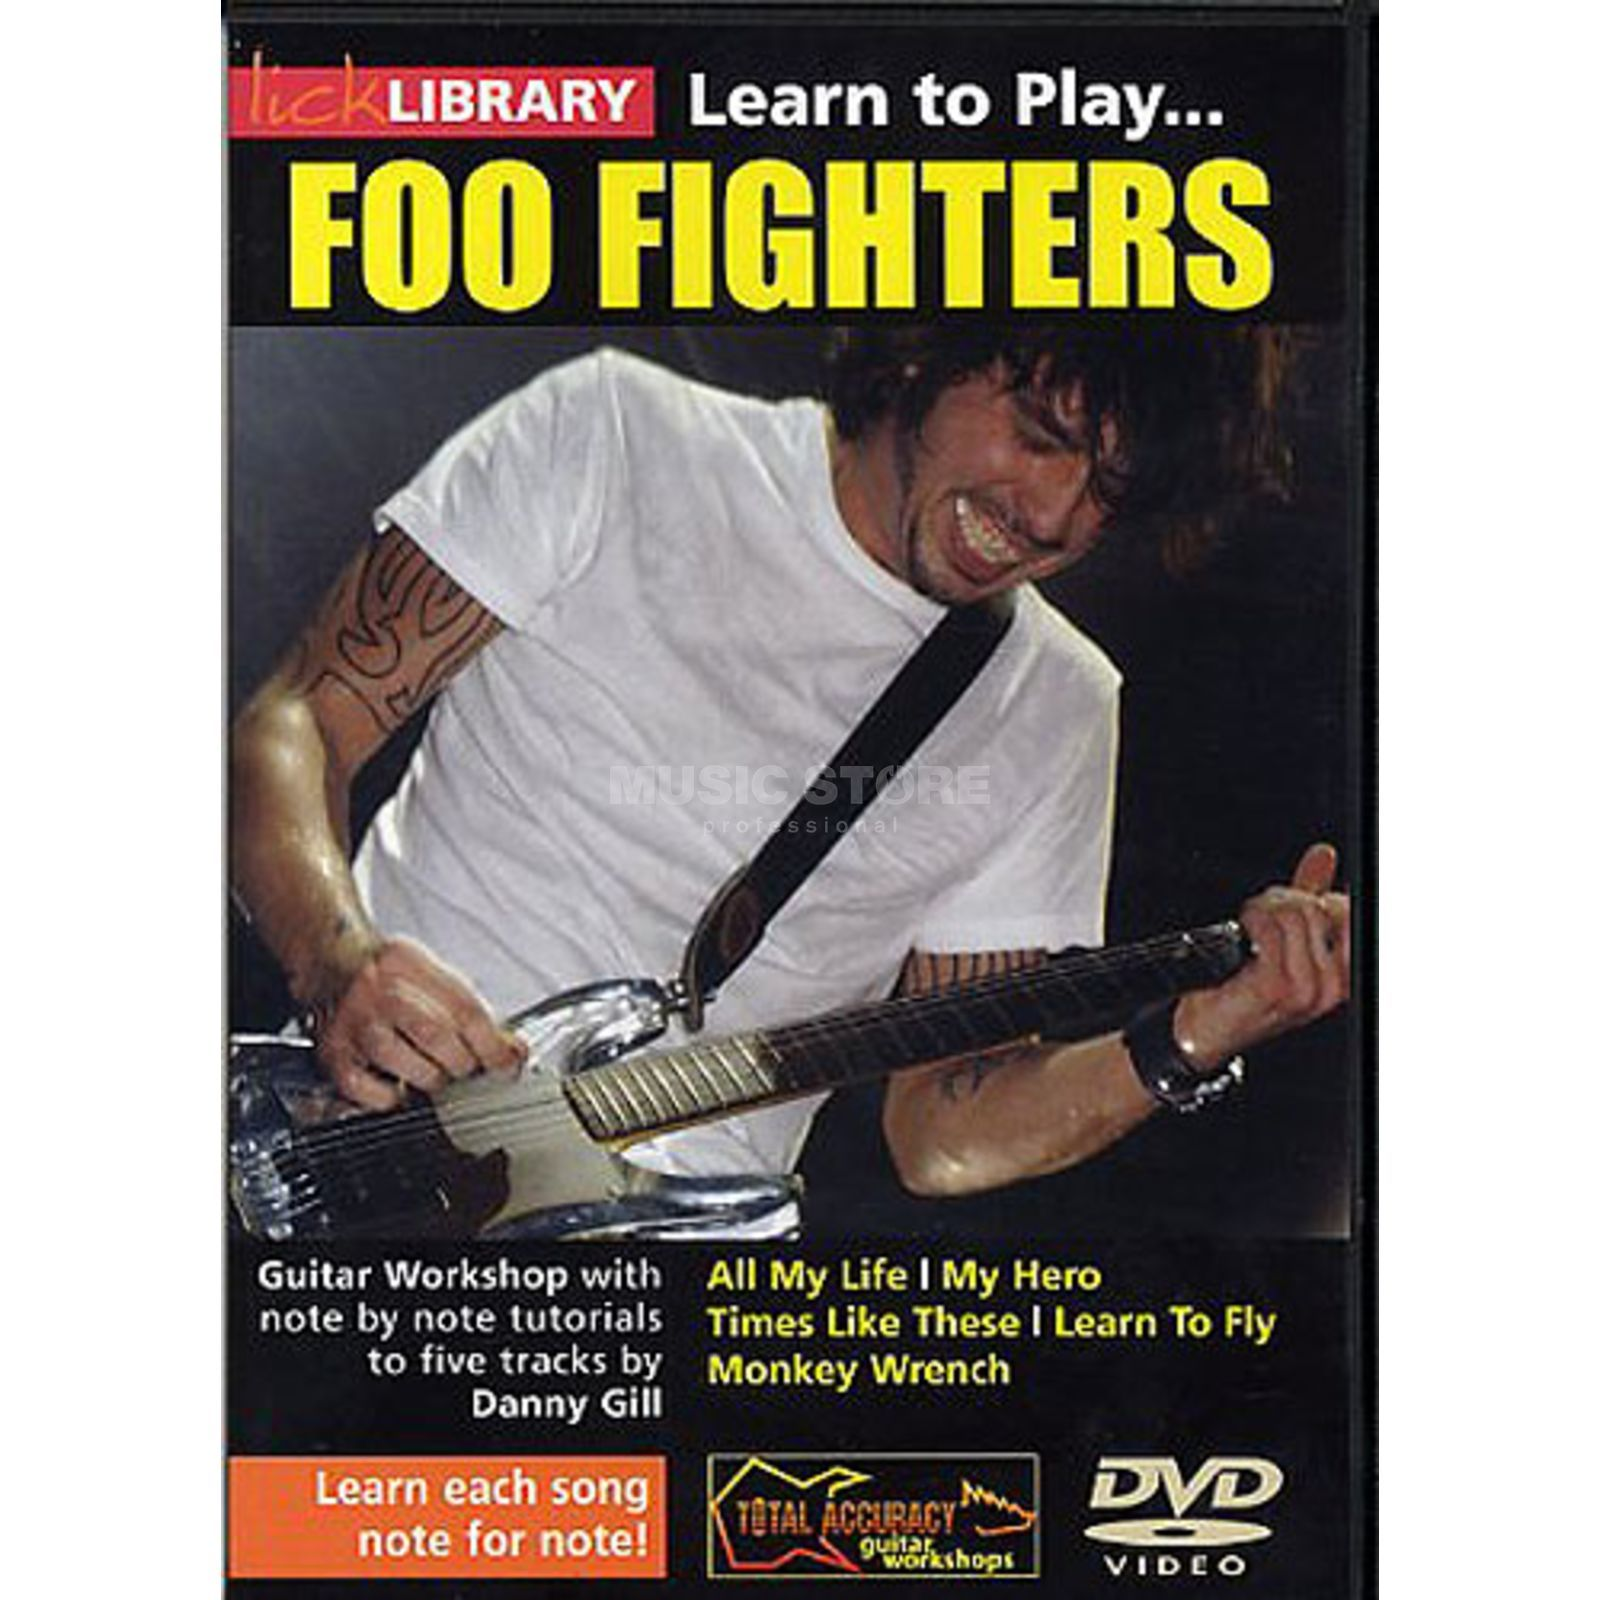 Roadrock International Lick Library: Learn To Play Foo Fighters DVD Produktbild